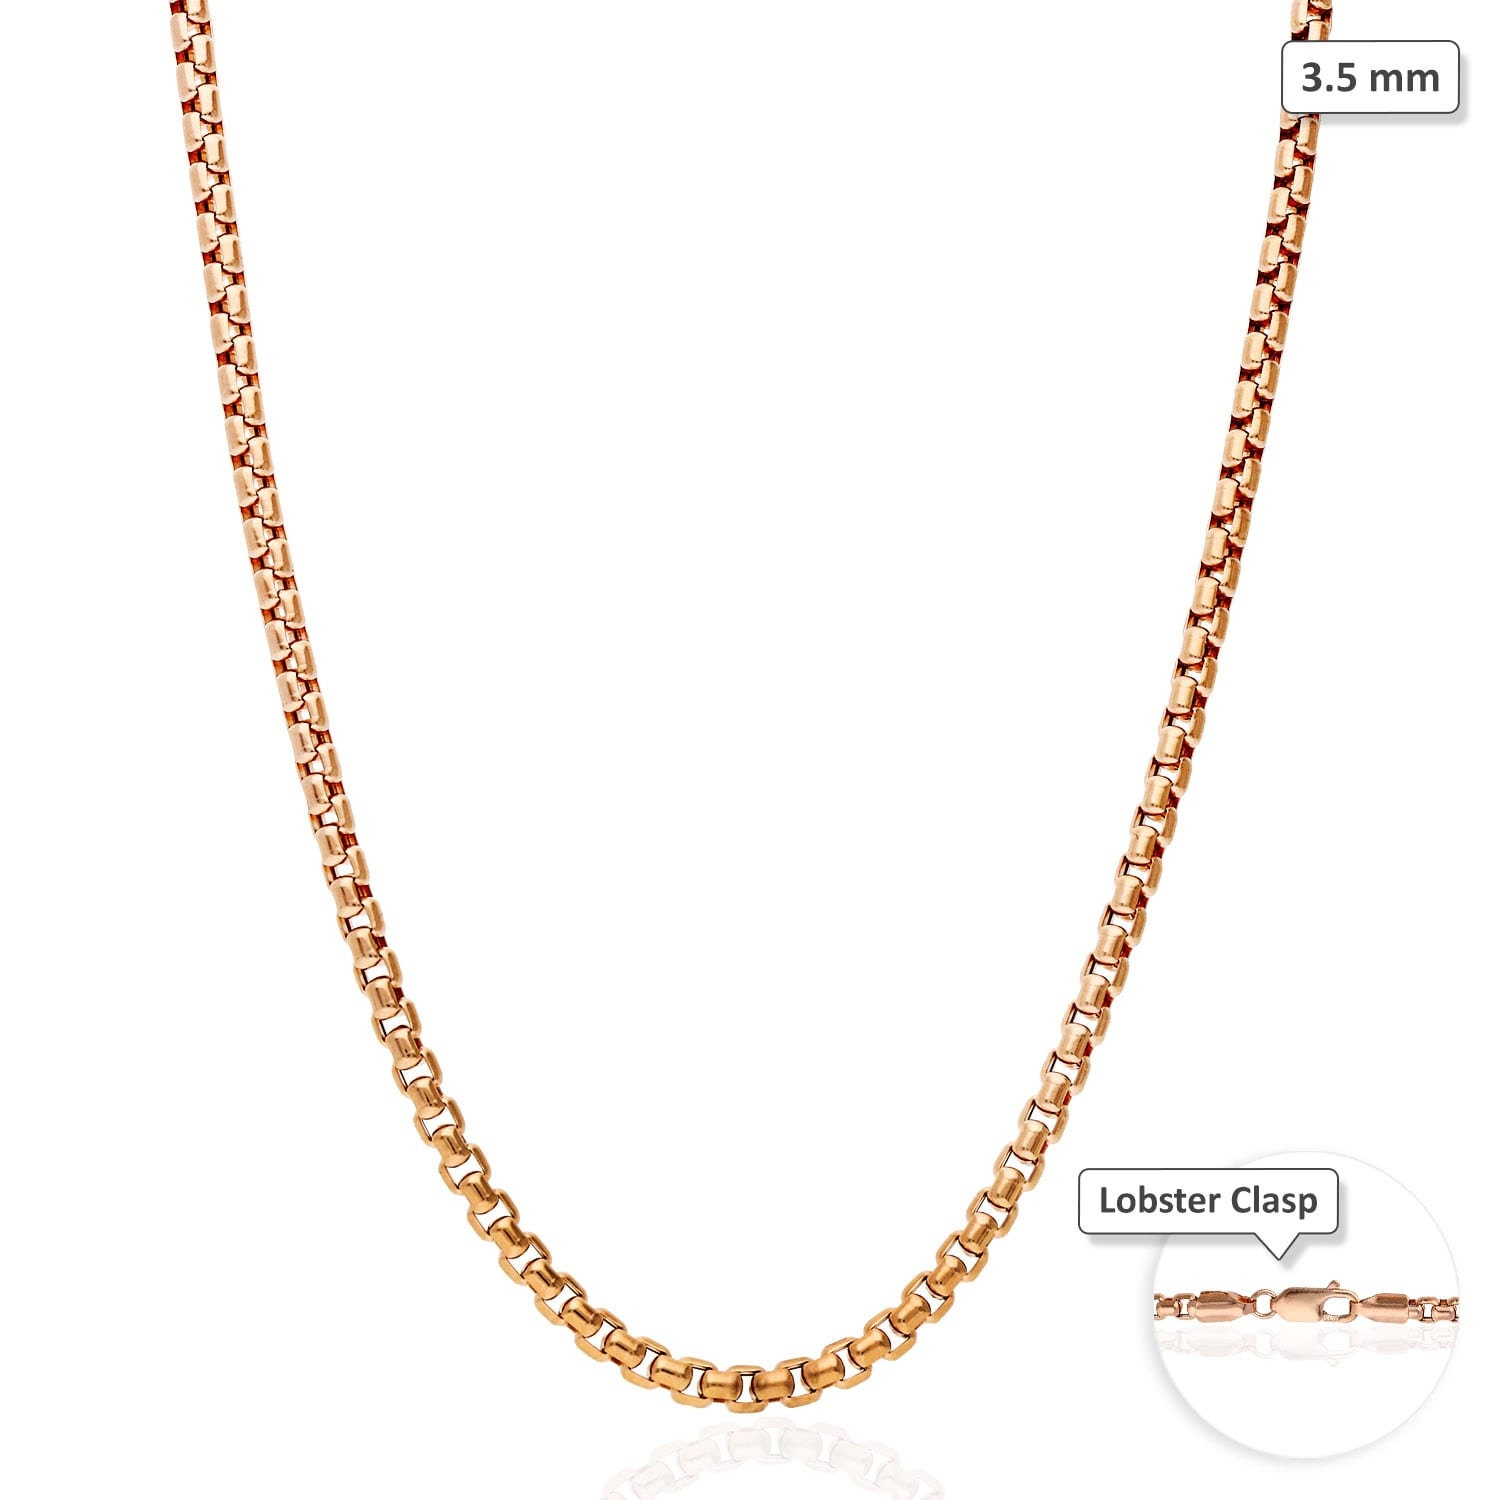 c4491fa04d5b4 14k Rose Gold 3.5mm High Polished Round Box Link Chain Necklace 18